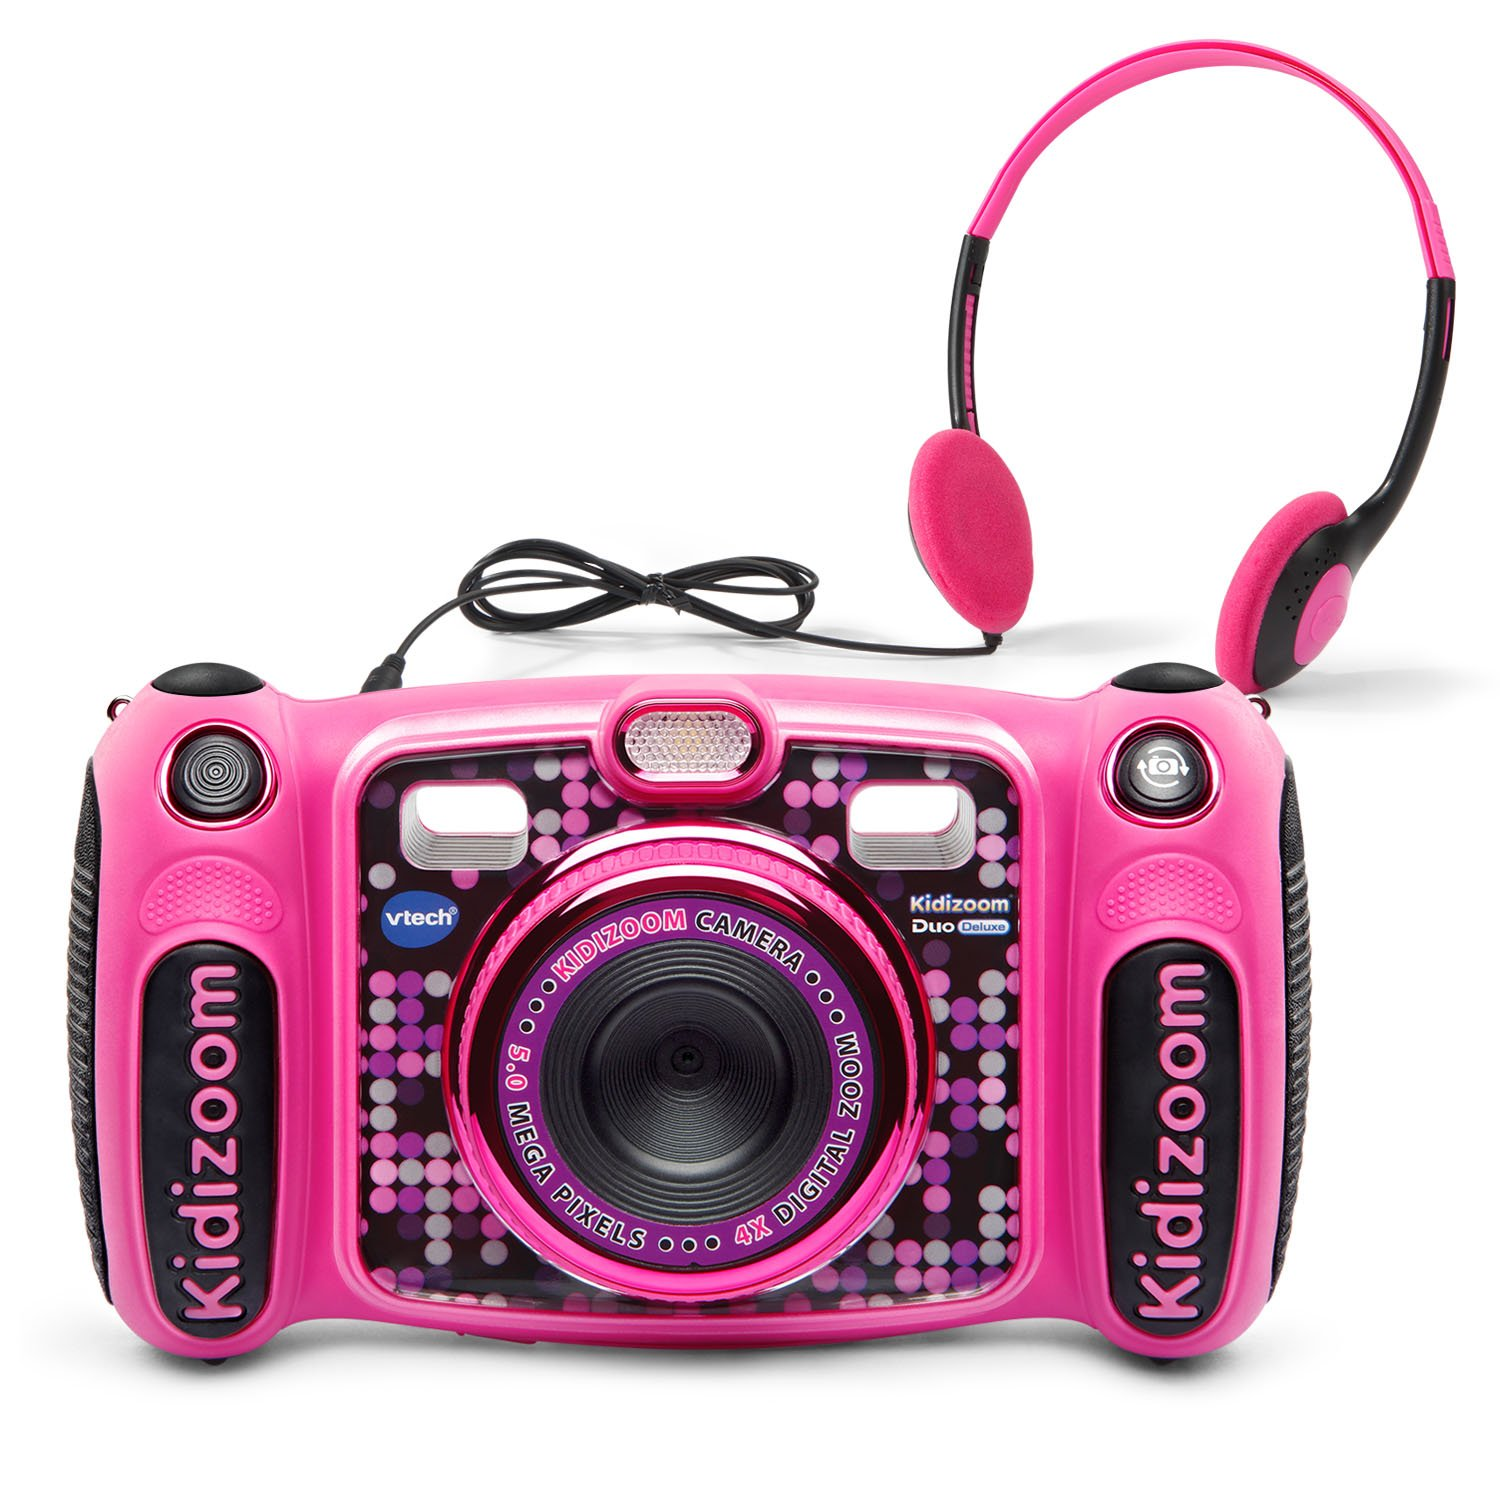 VTech Kidizoom Duo 5.0 Deluxe Digital Selfie Camera with MP3 Player & Headphones, Pink, Great Gift For Kids, Toddlers, Toy for Boys and Girls, Ages 3, 4, 5, 6, 7, 8, 9